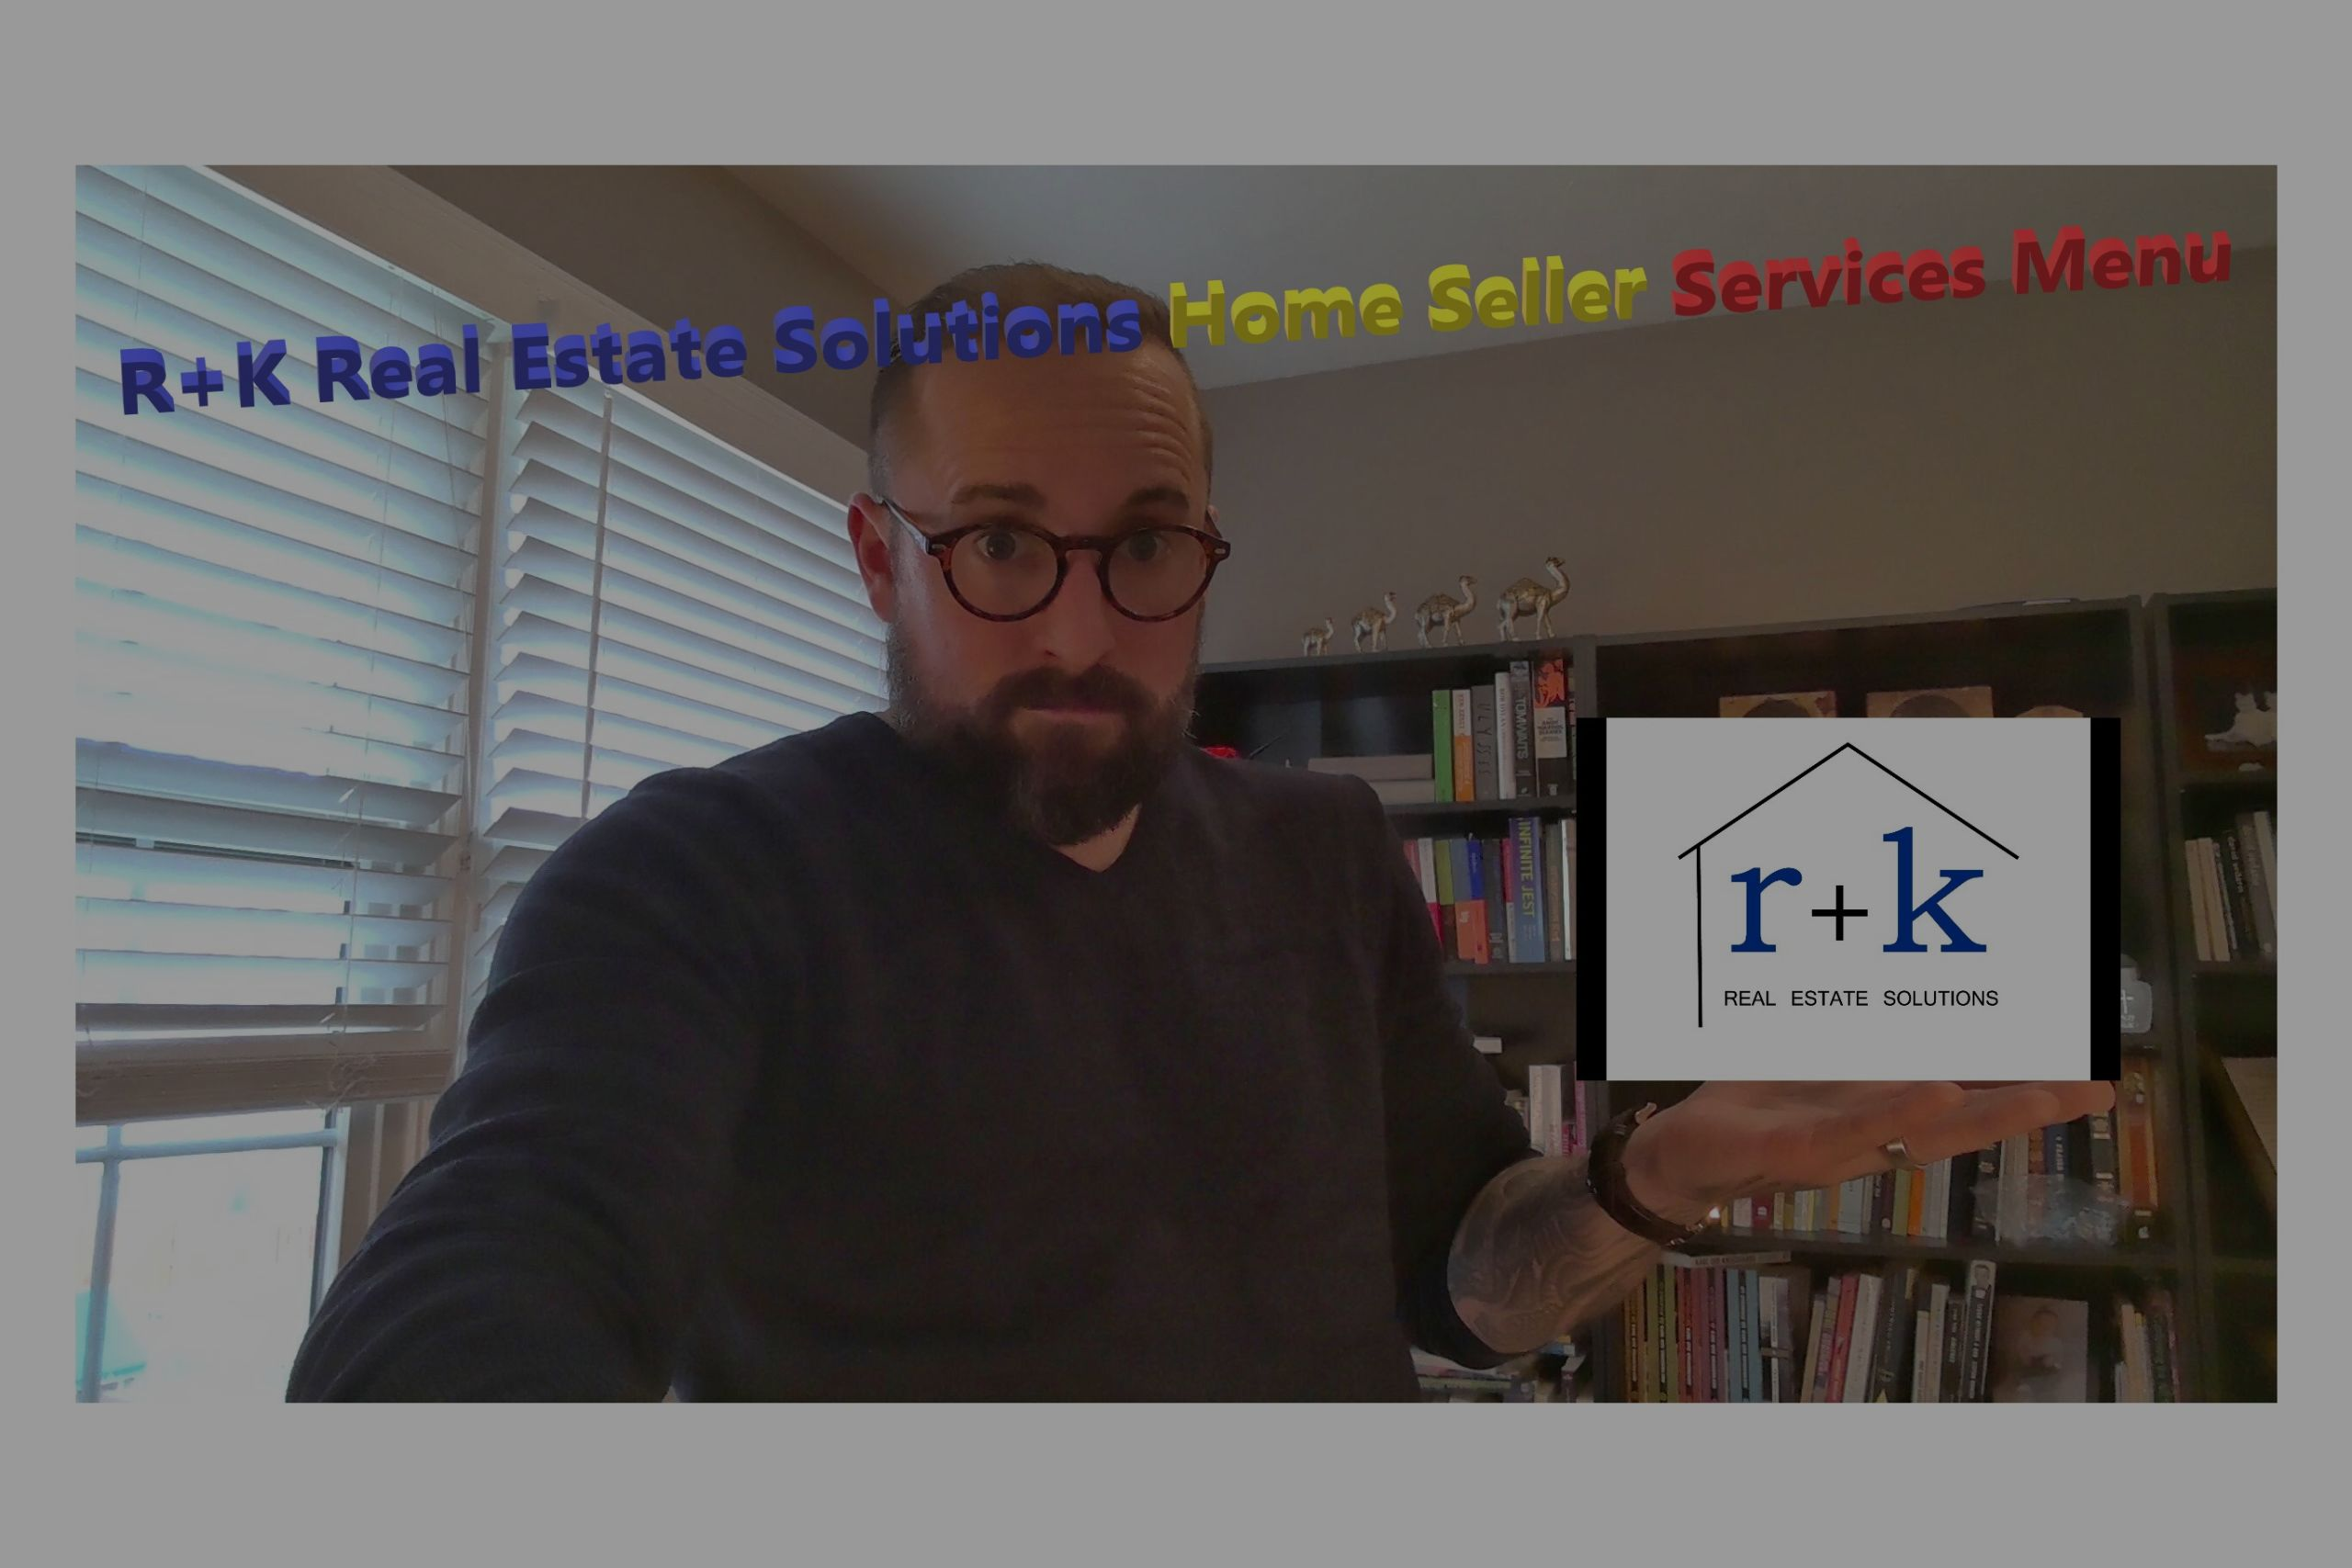 Solutions for Selling Your Home in Lawrence